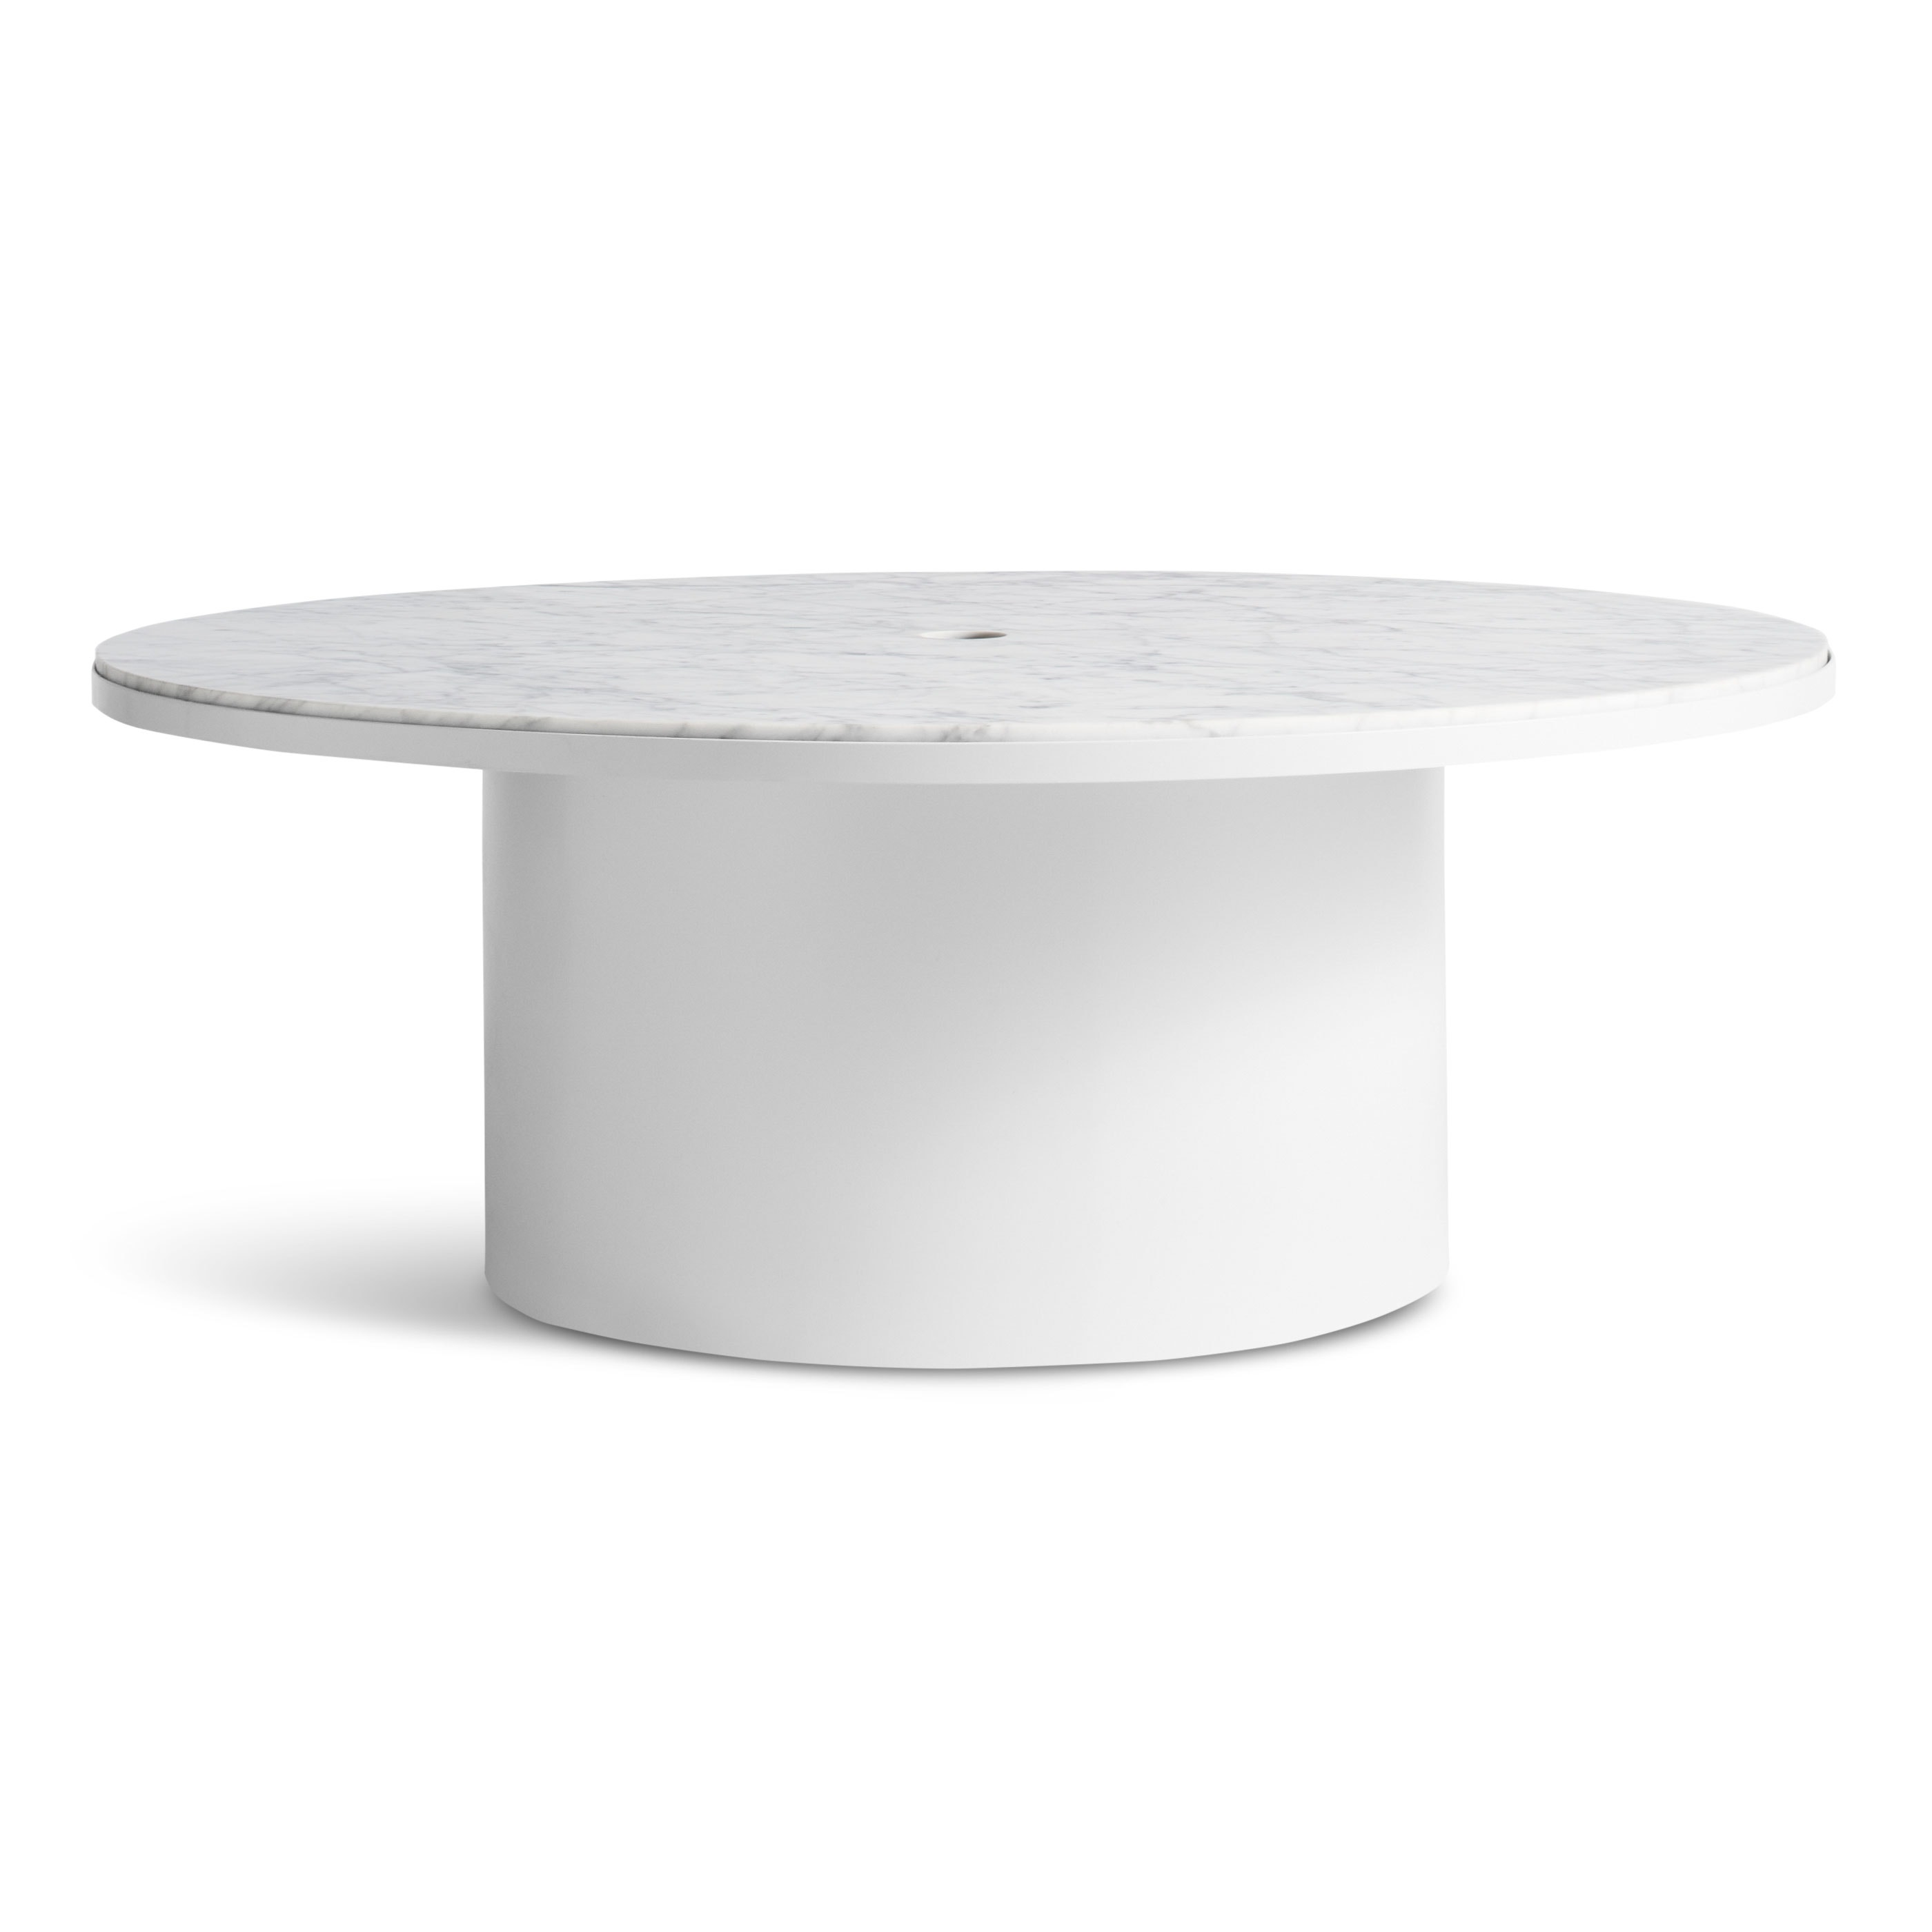 Plateau Coffee Table Modern Coffee and Side Tables